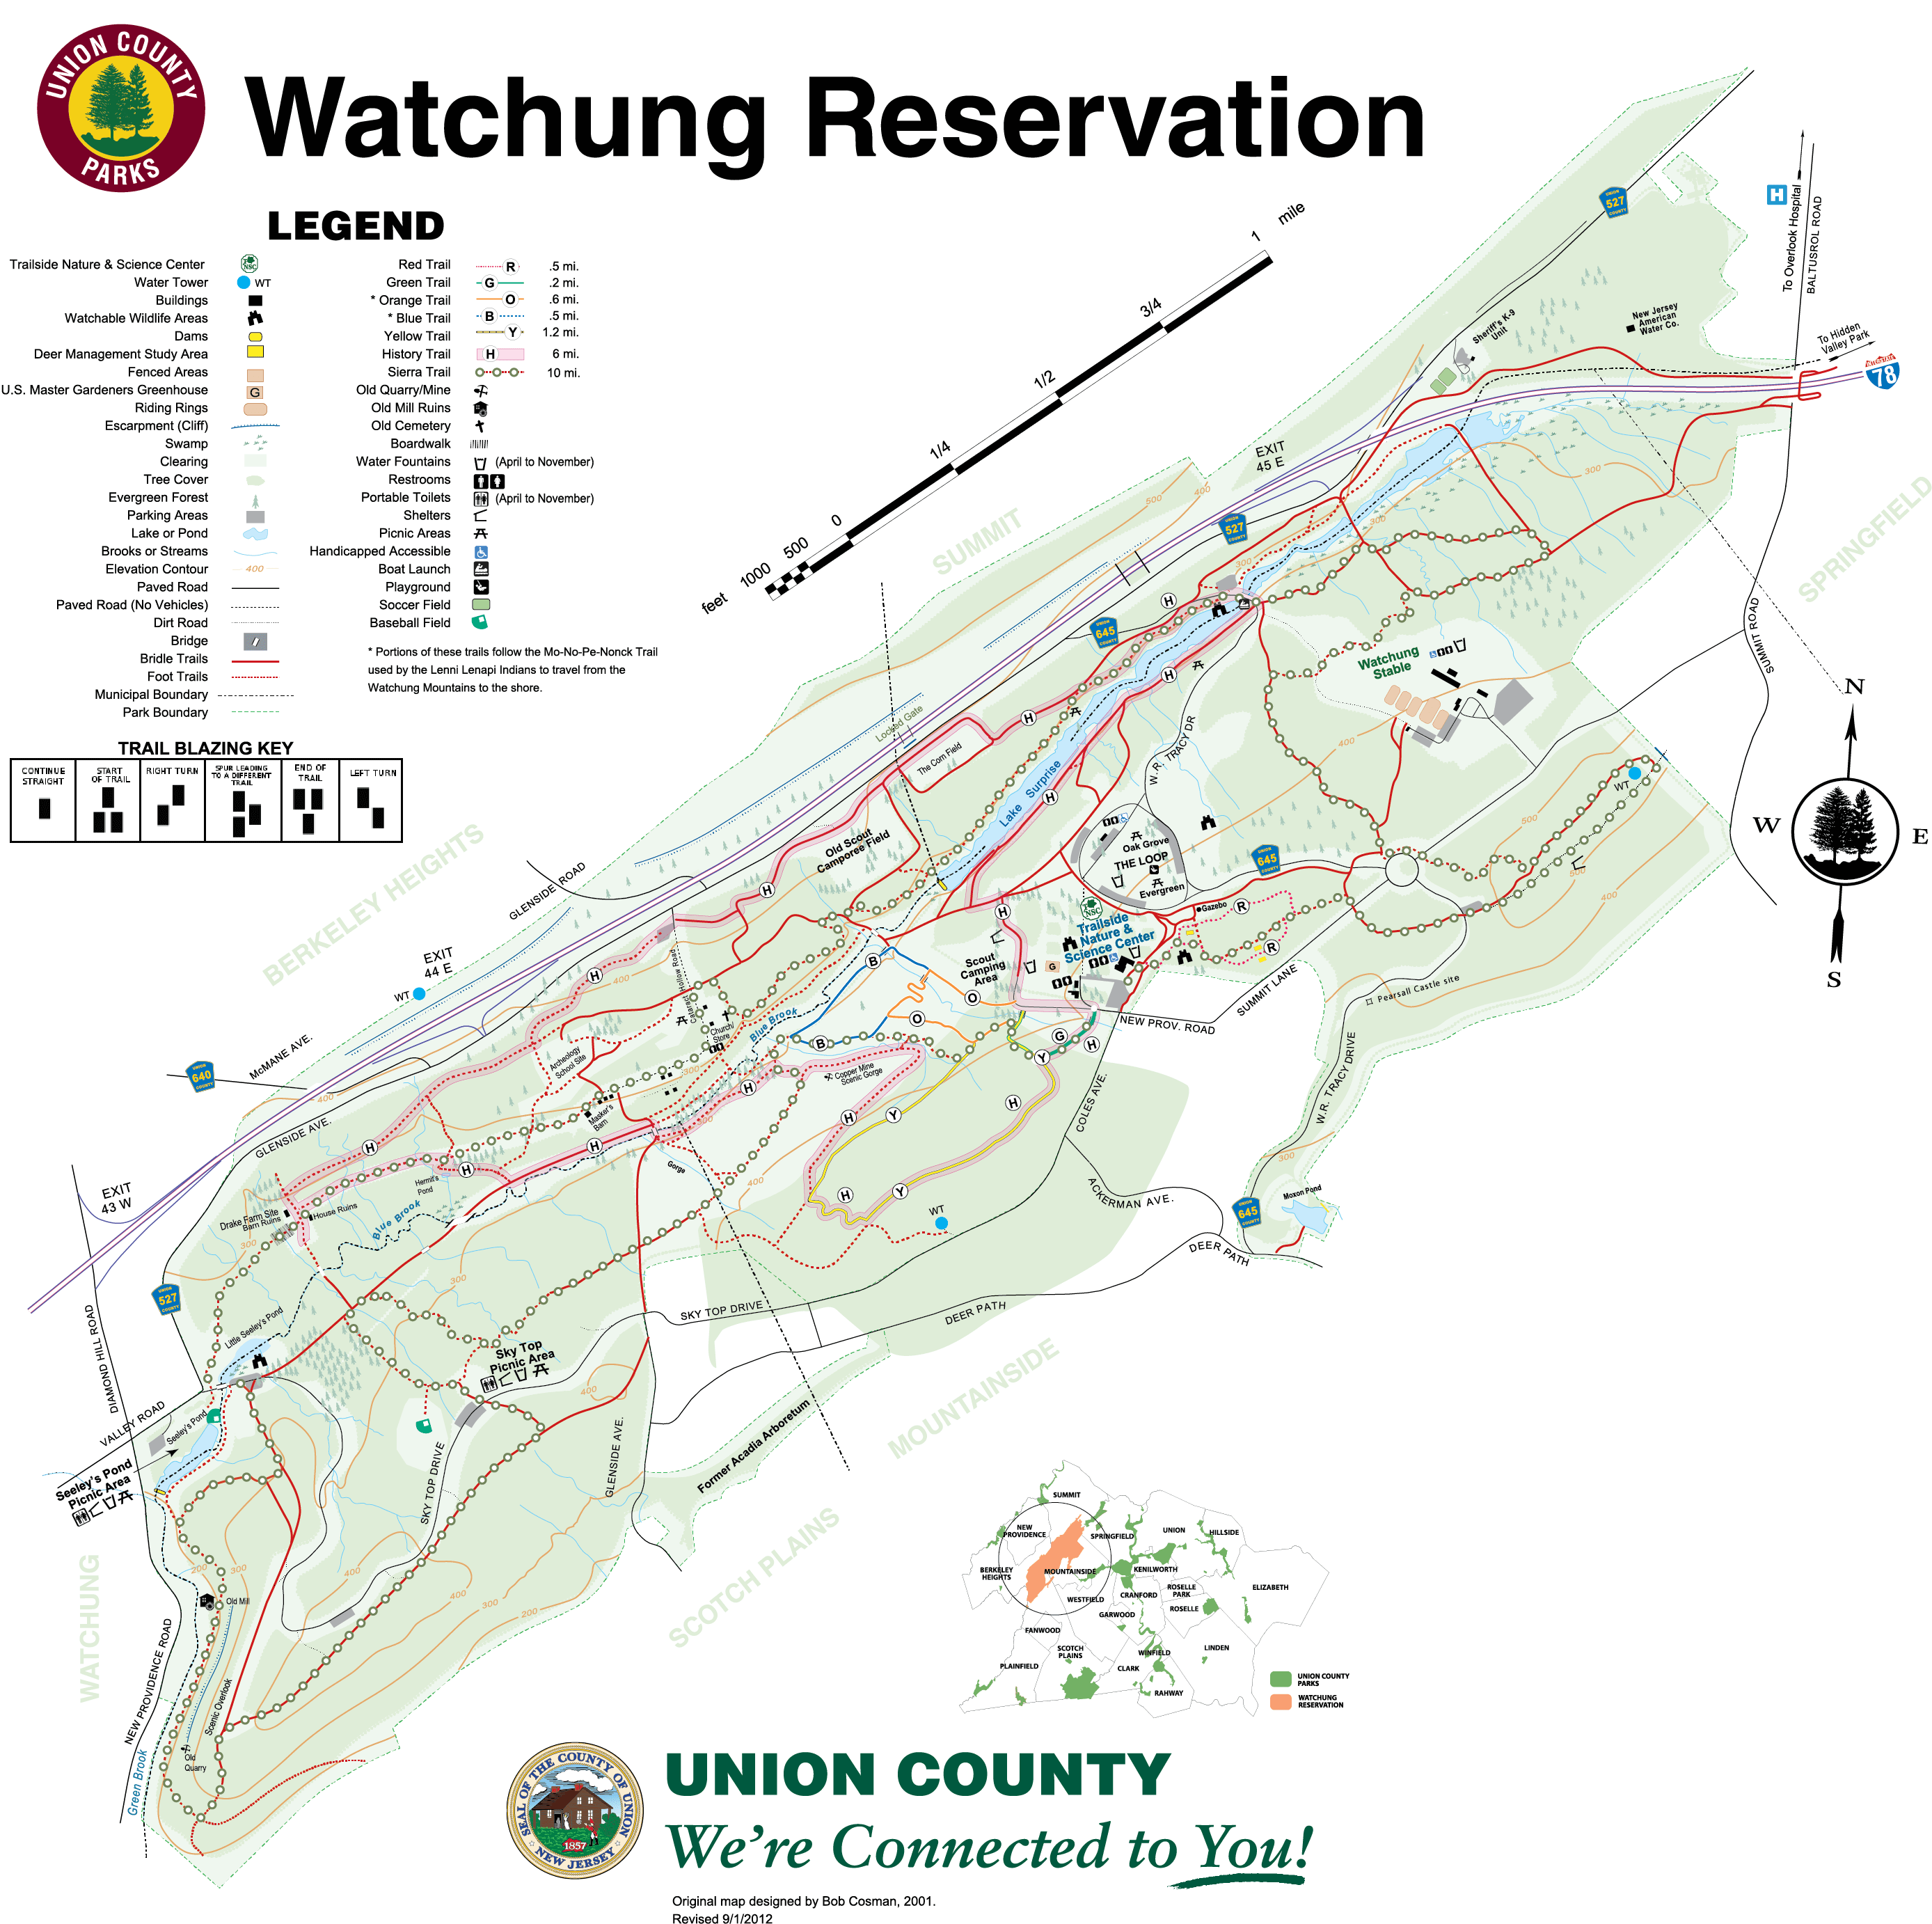 Watchung Reservation – County of Union, New Jersey on